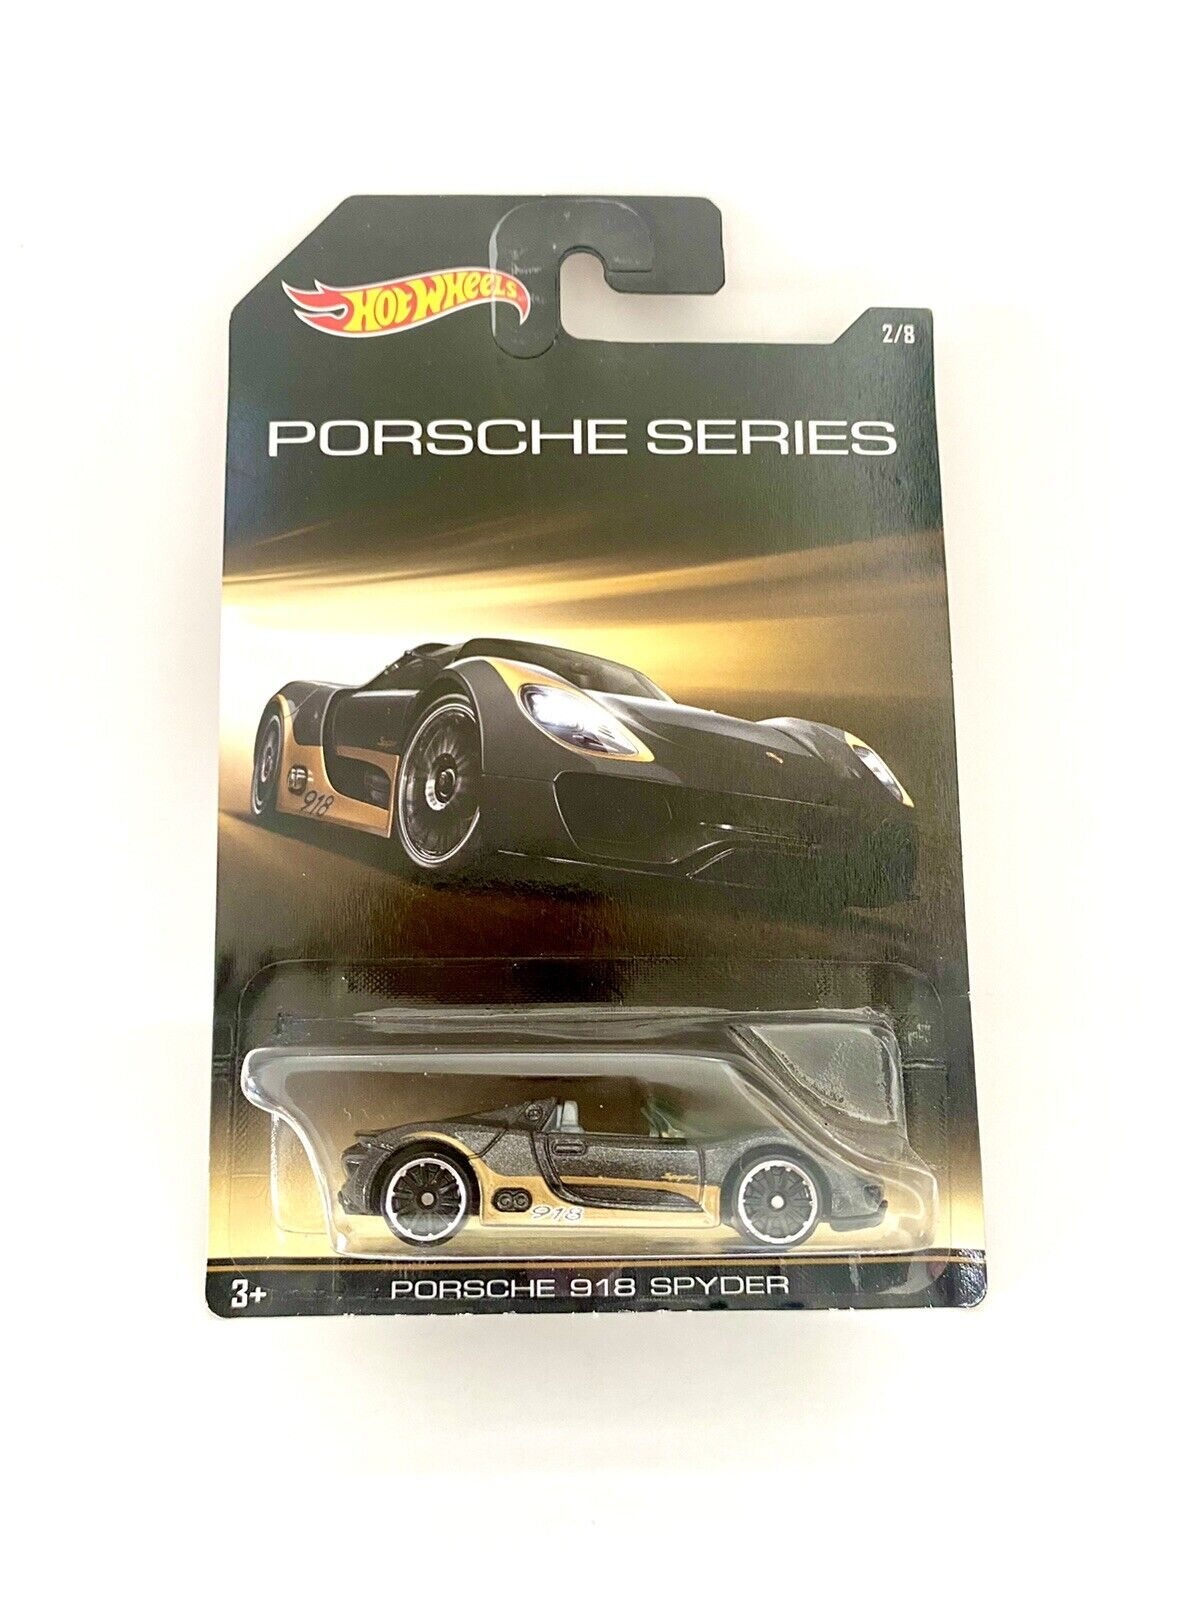 2015 Hot Wheels Porsche Series Complete Set of 8 Wal-Mart Exclusive *See Info*